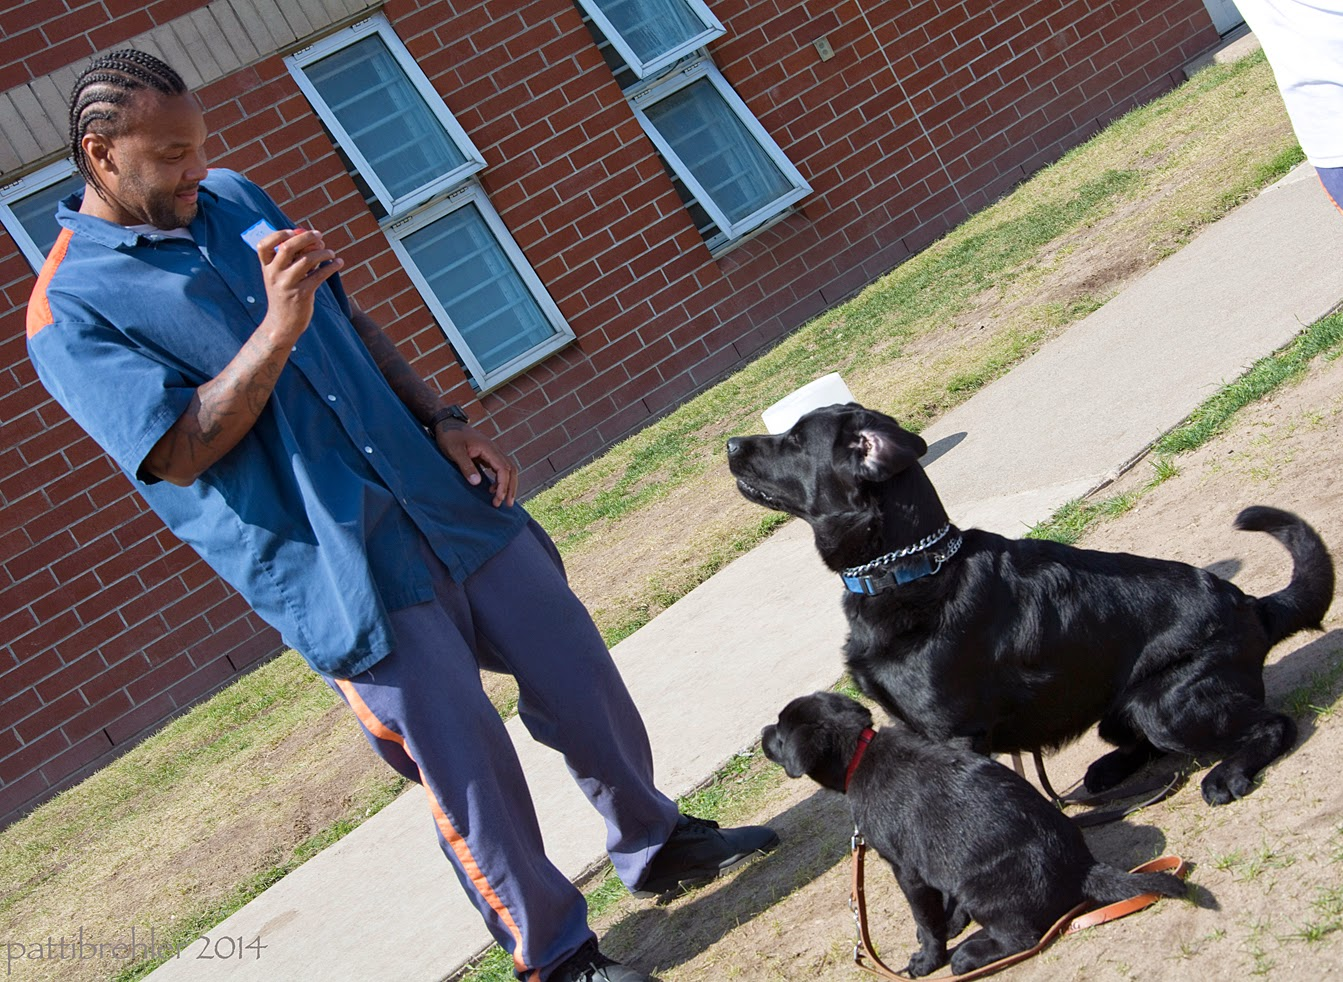 The picture is taken on an angle. An african american man dressed in the blue prison uniform is standing on the left with an apple in his right hand at his chest. His left hand is at his side. The man is looking down at two black labs sitting in front of him. The closest lab to the camera is a very small pup, her leash is draped on the ground. The young male lab is sitting beyond her with his tail in a curl and his legs poised like he his about to spring up. He is totally focused on the apple in the man's hand. There is a brick building behind them with four windows.